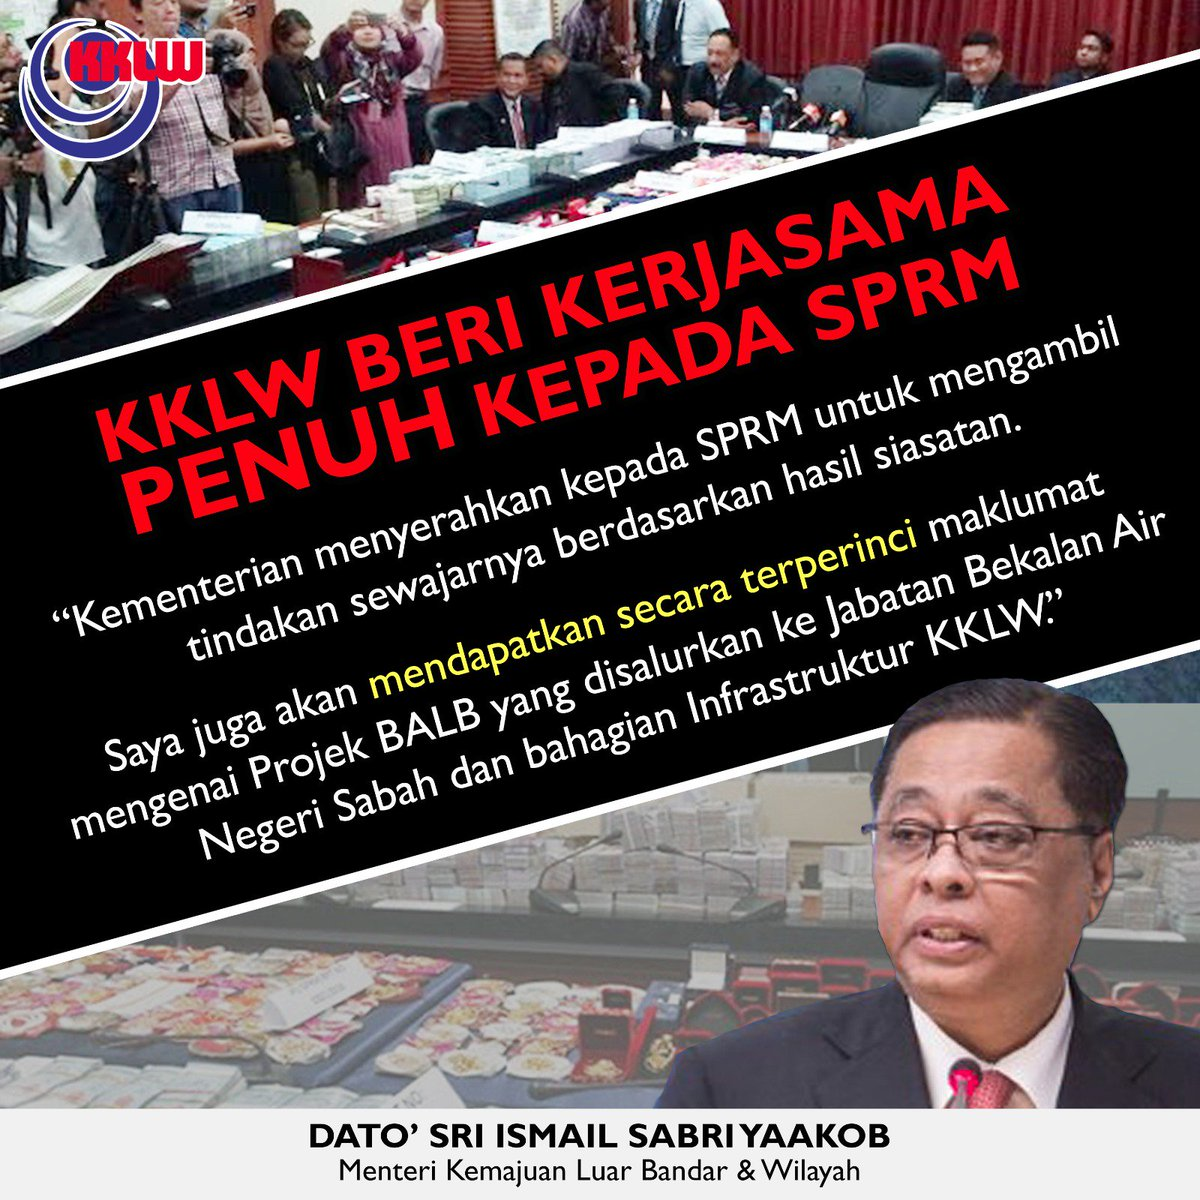 Image result for kklw sprm